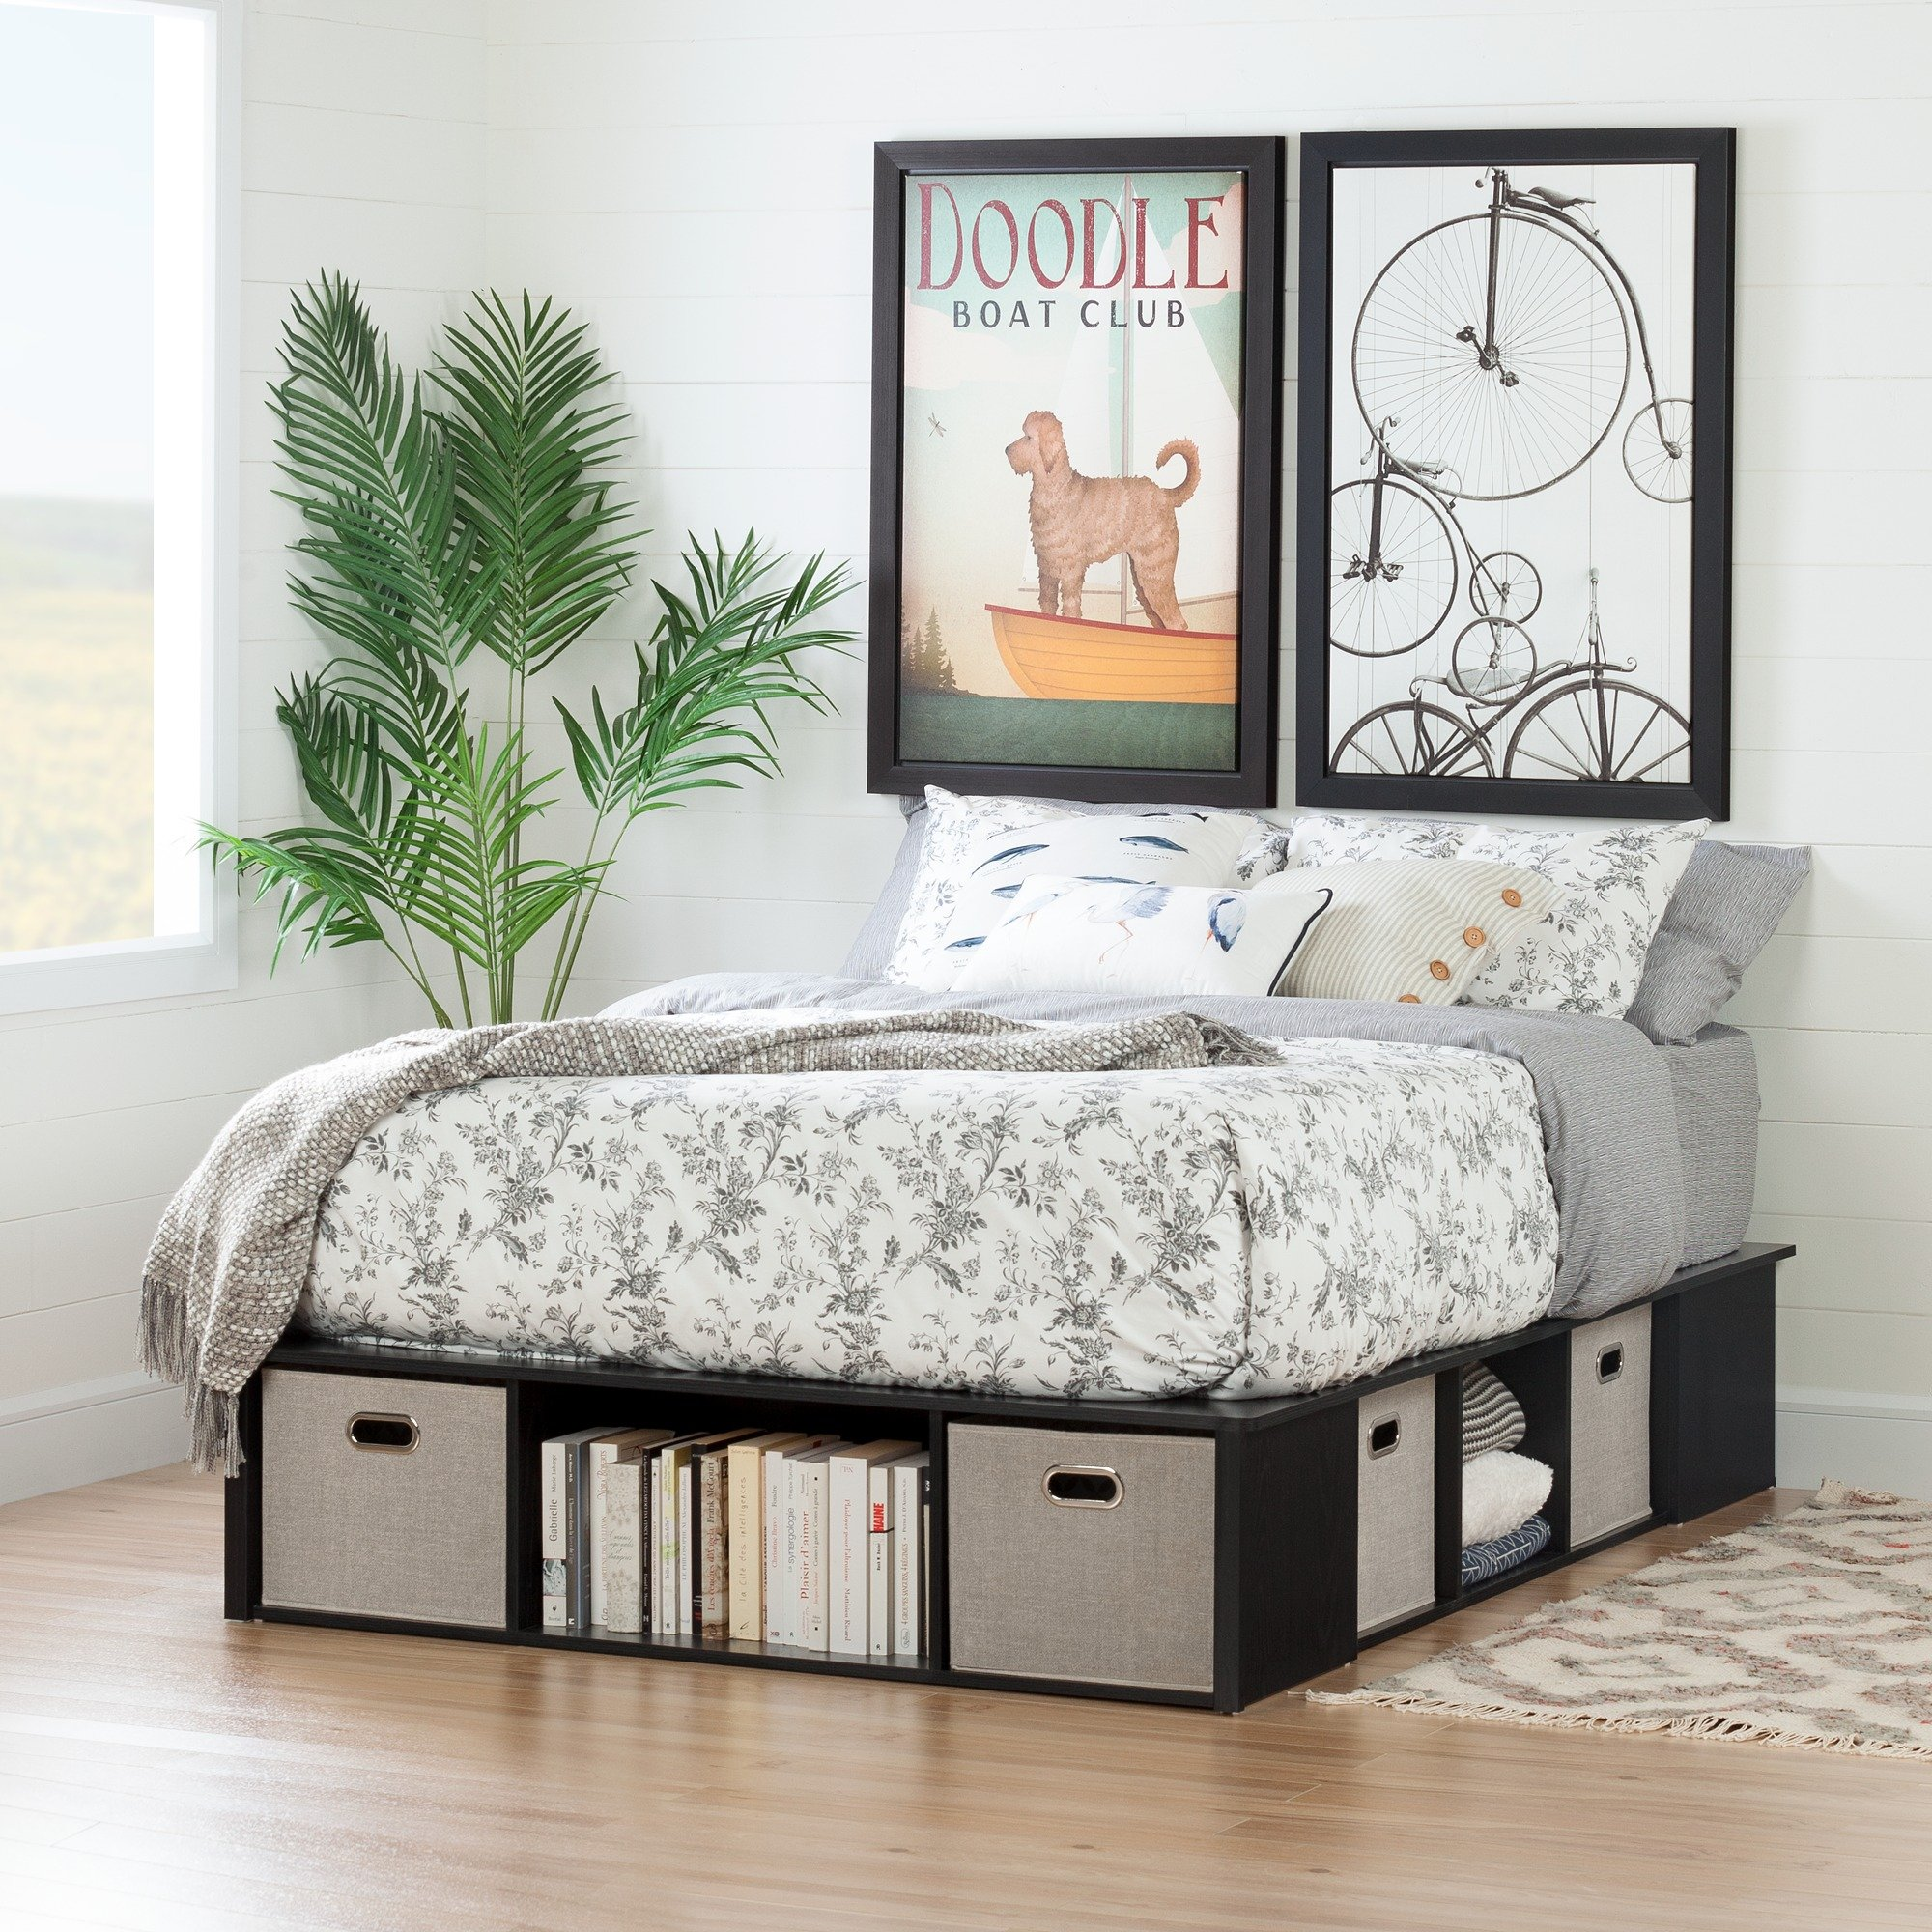 South Shore Flexible Platform Bed with Storage and Baskets, Full 54-Inch, Black Oak by South Shore